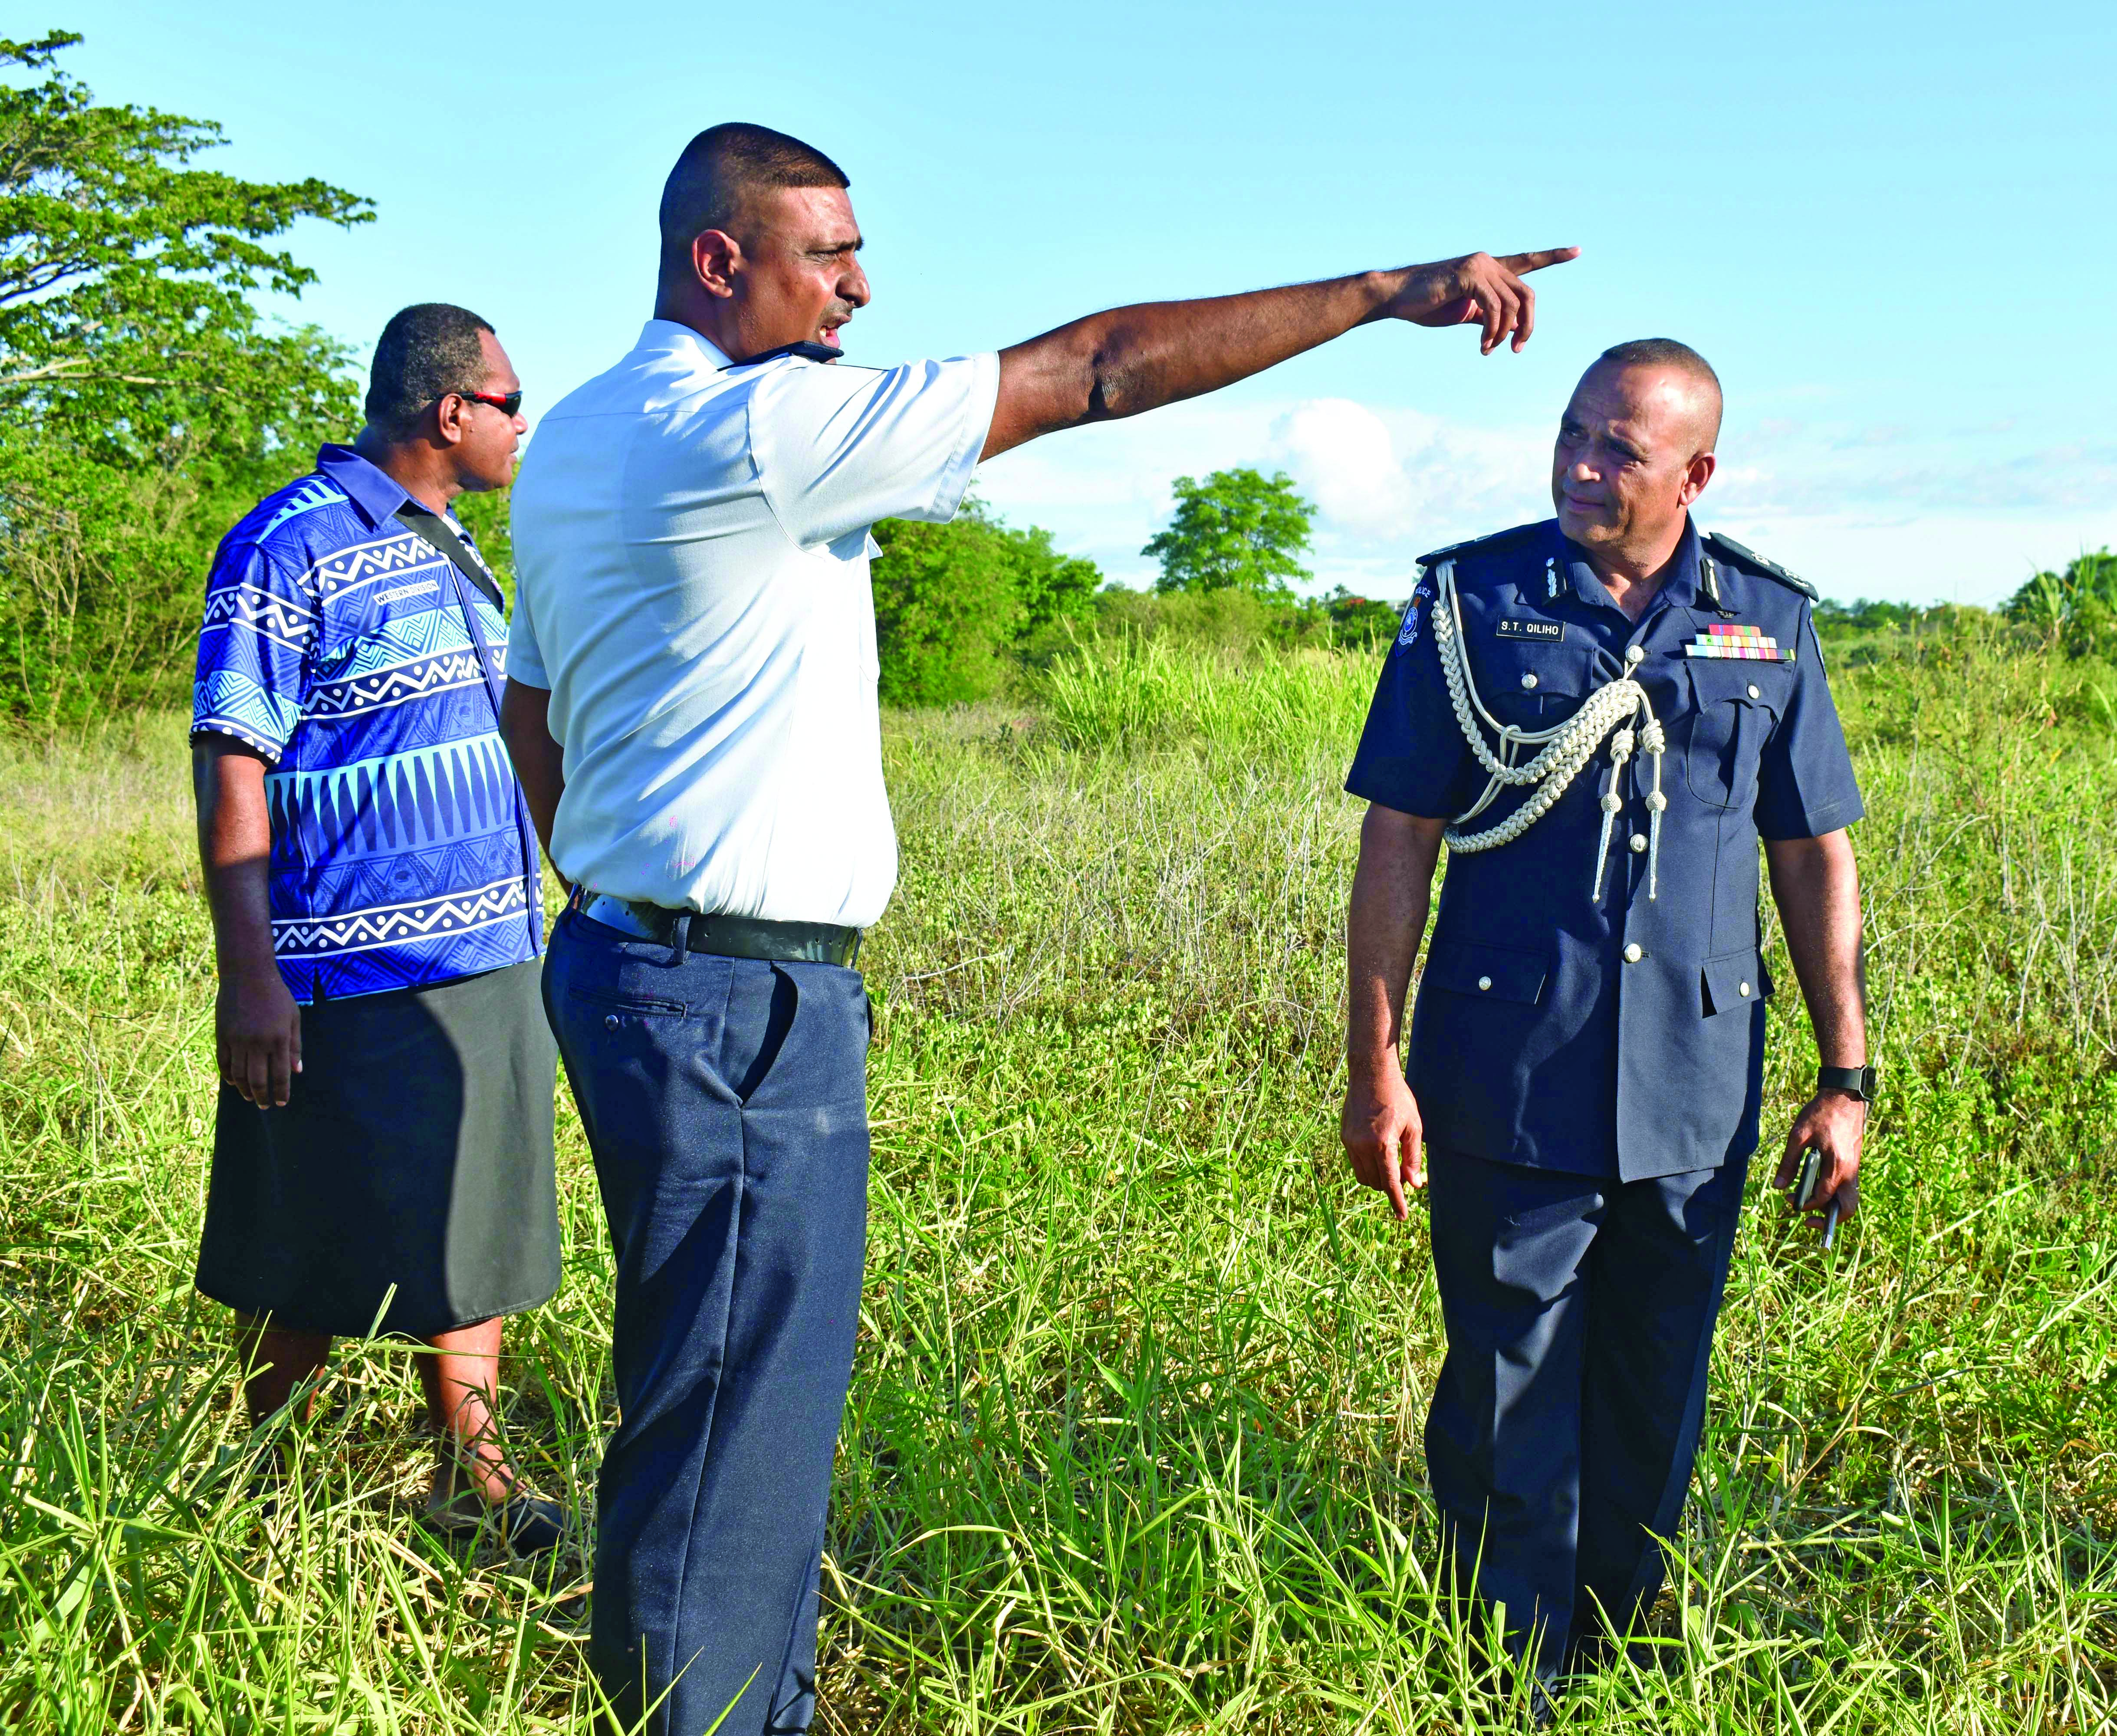 Commissioner of Police, Brigadier General Sitiveni Qiliho with his officers at the scene where Kishore Dutt was apprehended by police in Saweni , Lautoka . Photo : Arieta Vakasukawaqa